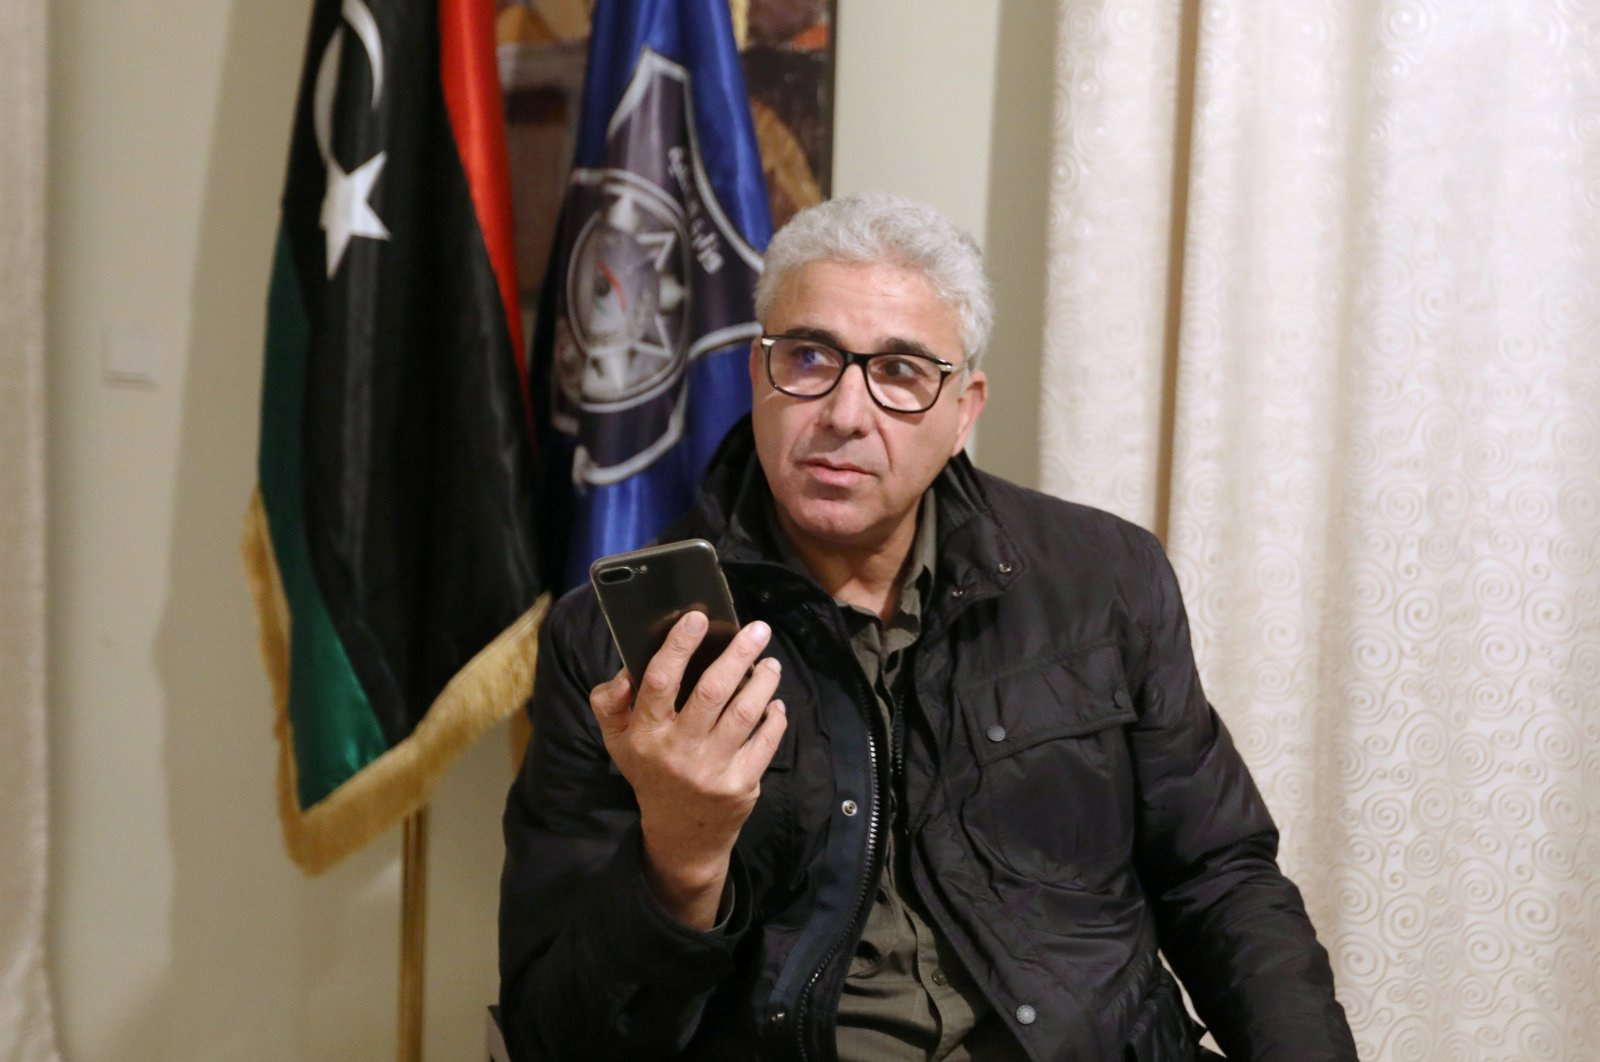 Fathi Bashagha, former Interior Minister of the Tripoli-based U.N.-backed Government of National Accord (GNA), speaks to Reuters in Tripoli, Libya, February 21, 2021. REUTERS/Hazem Ahmed